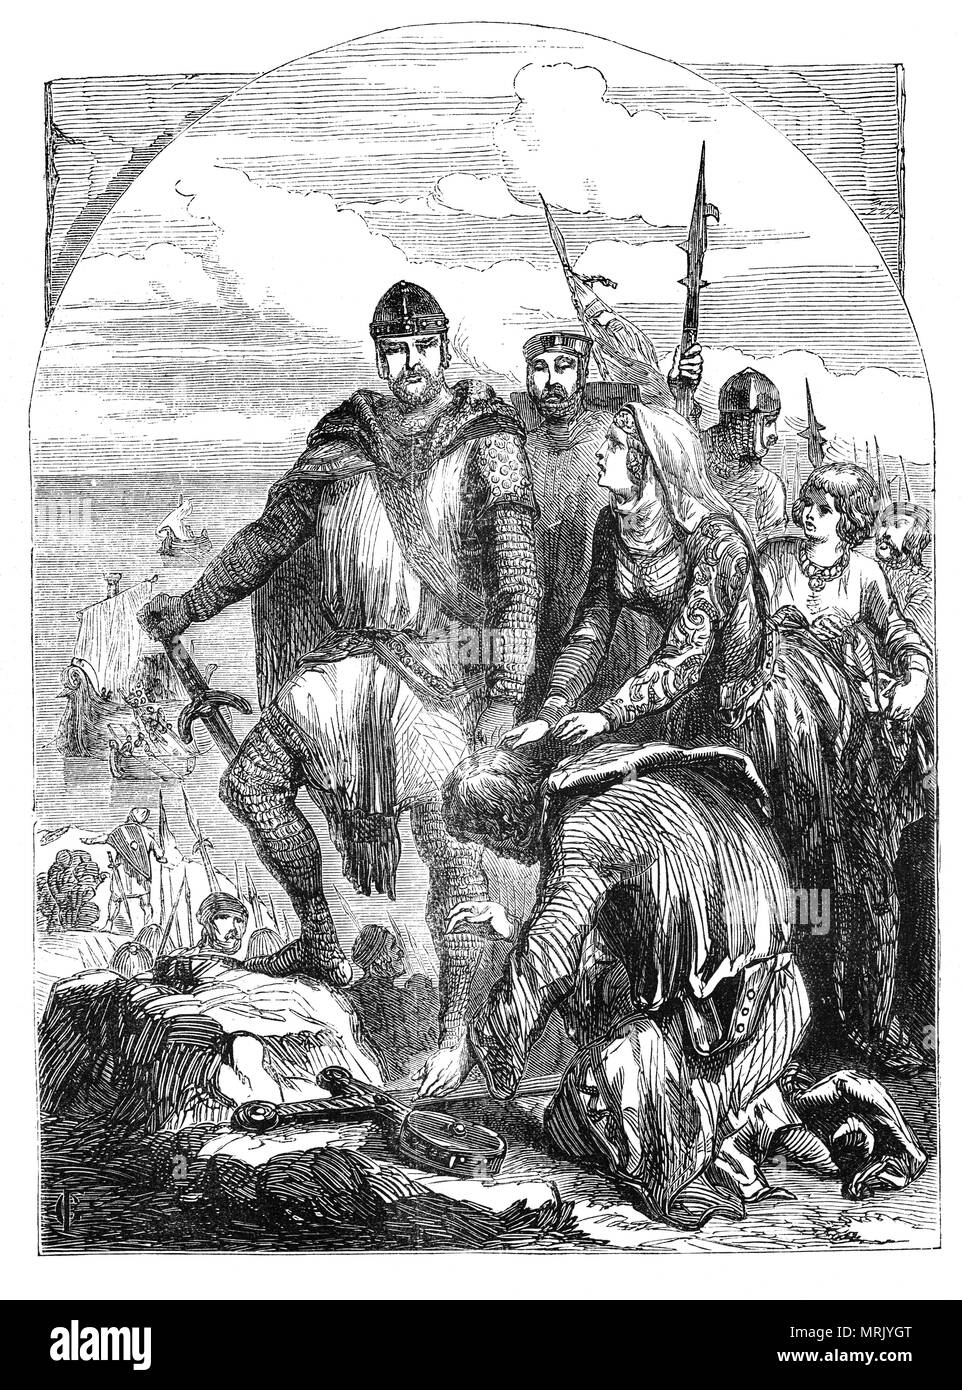 Following the capture of King Richard I in 1192 near Vienna by Austrian soldiers of Leopold V, Duke of Austria, he was held prisoner for some fifteen months. During that time, Prince John, Richard's brother, and King Philip of France offered 80,000 marks for the Emperor to hold Richard prisoner. The money to rescue the King was transferred to Germany by the emperor's ambassadors'at the king's peril' (had it been lost along the way, Richard would have been held responsible), and finally, on 4 February 1194 Richard was released. On Richards return John begged the king for forgiveness. - Stock Image